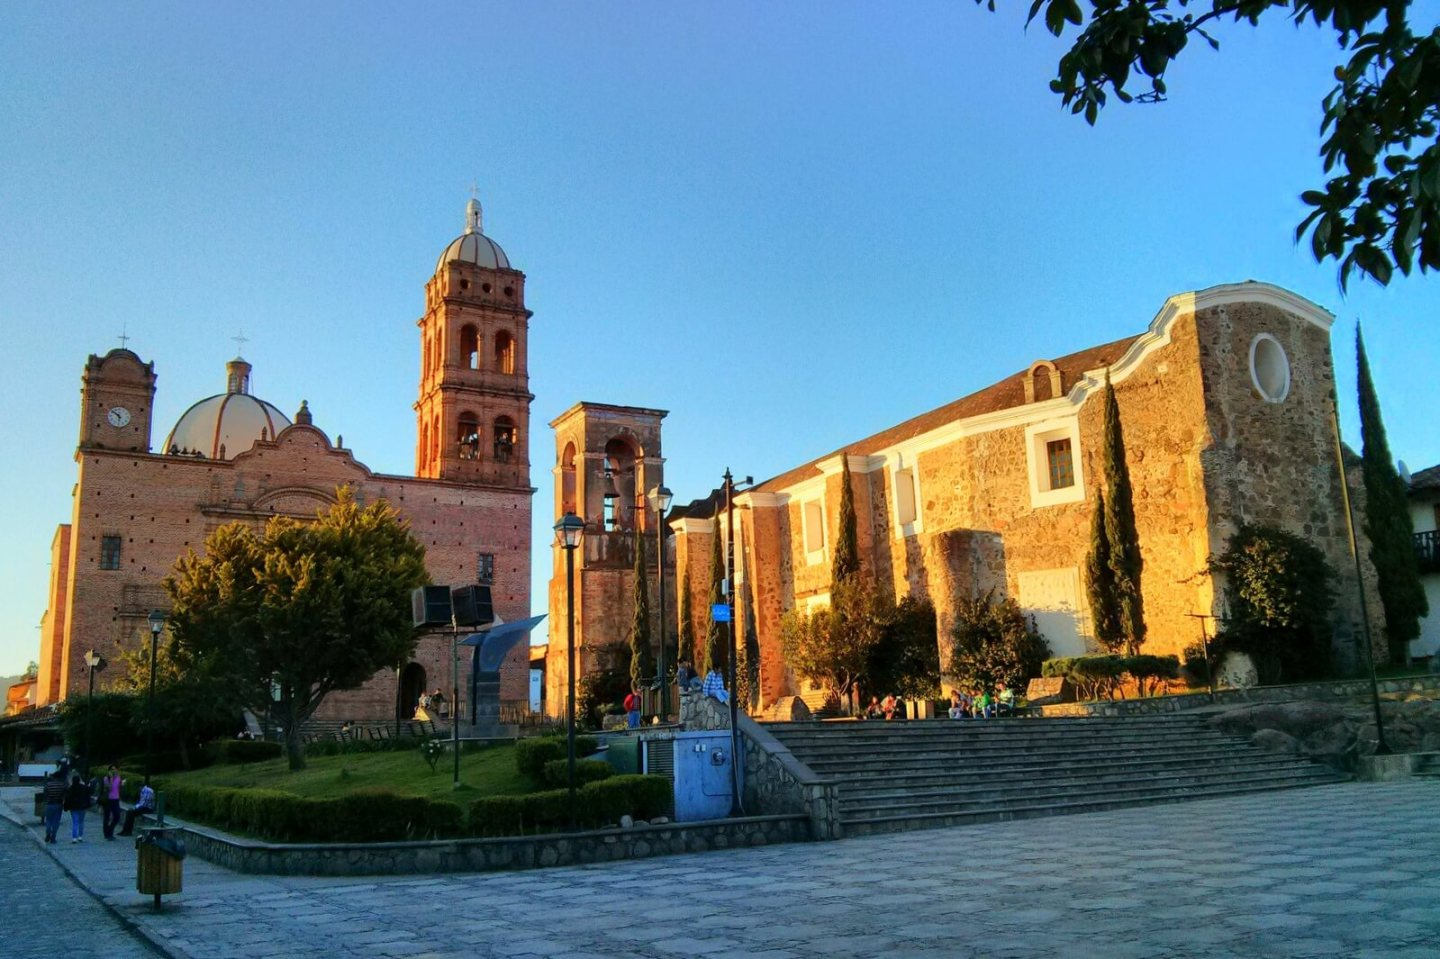 Tapalpa is the first pueblo magico in Jalisco to achieve the designation.